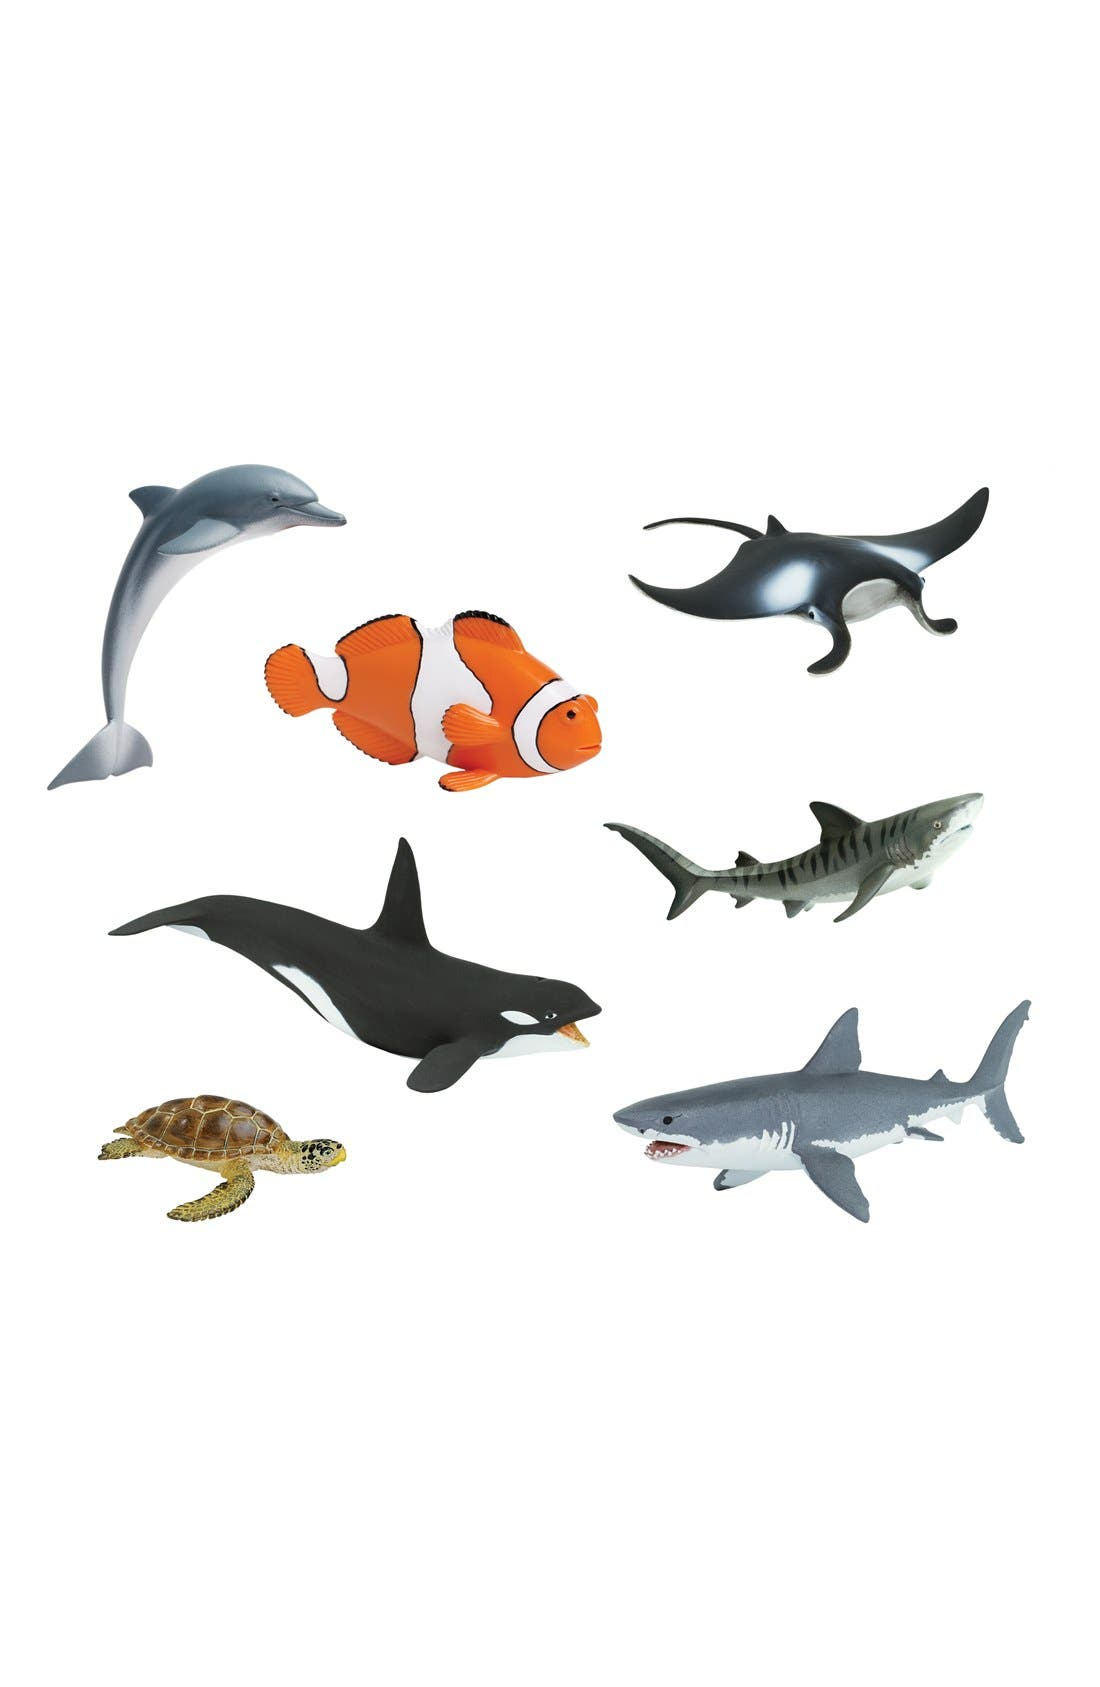 Alternate Image 1 Selected - Safari Ltd. Sea Life Figurines (Set of 7)